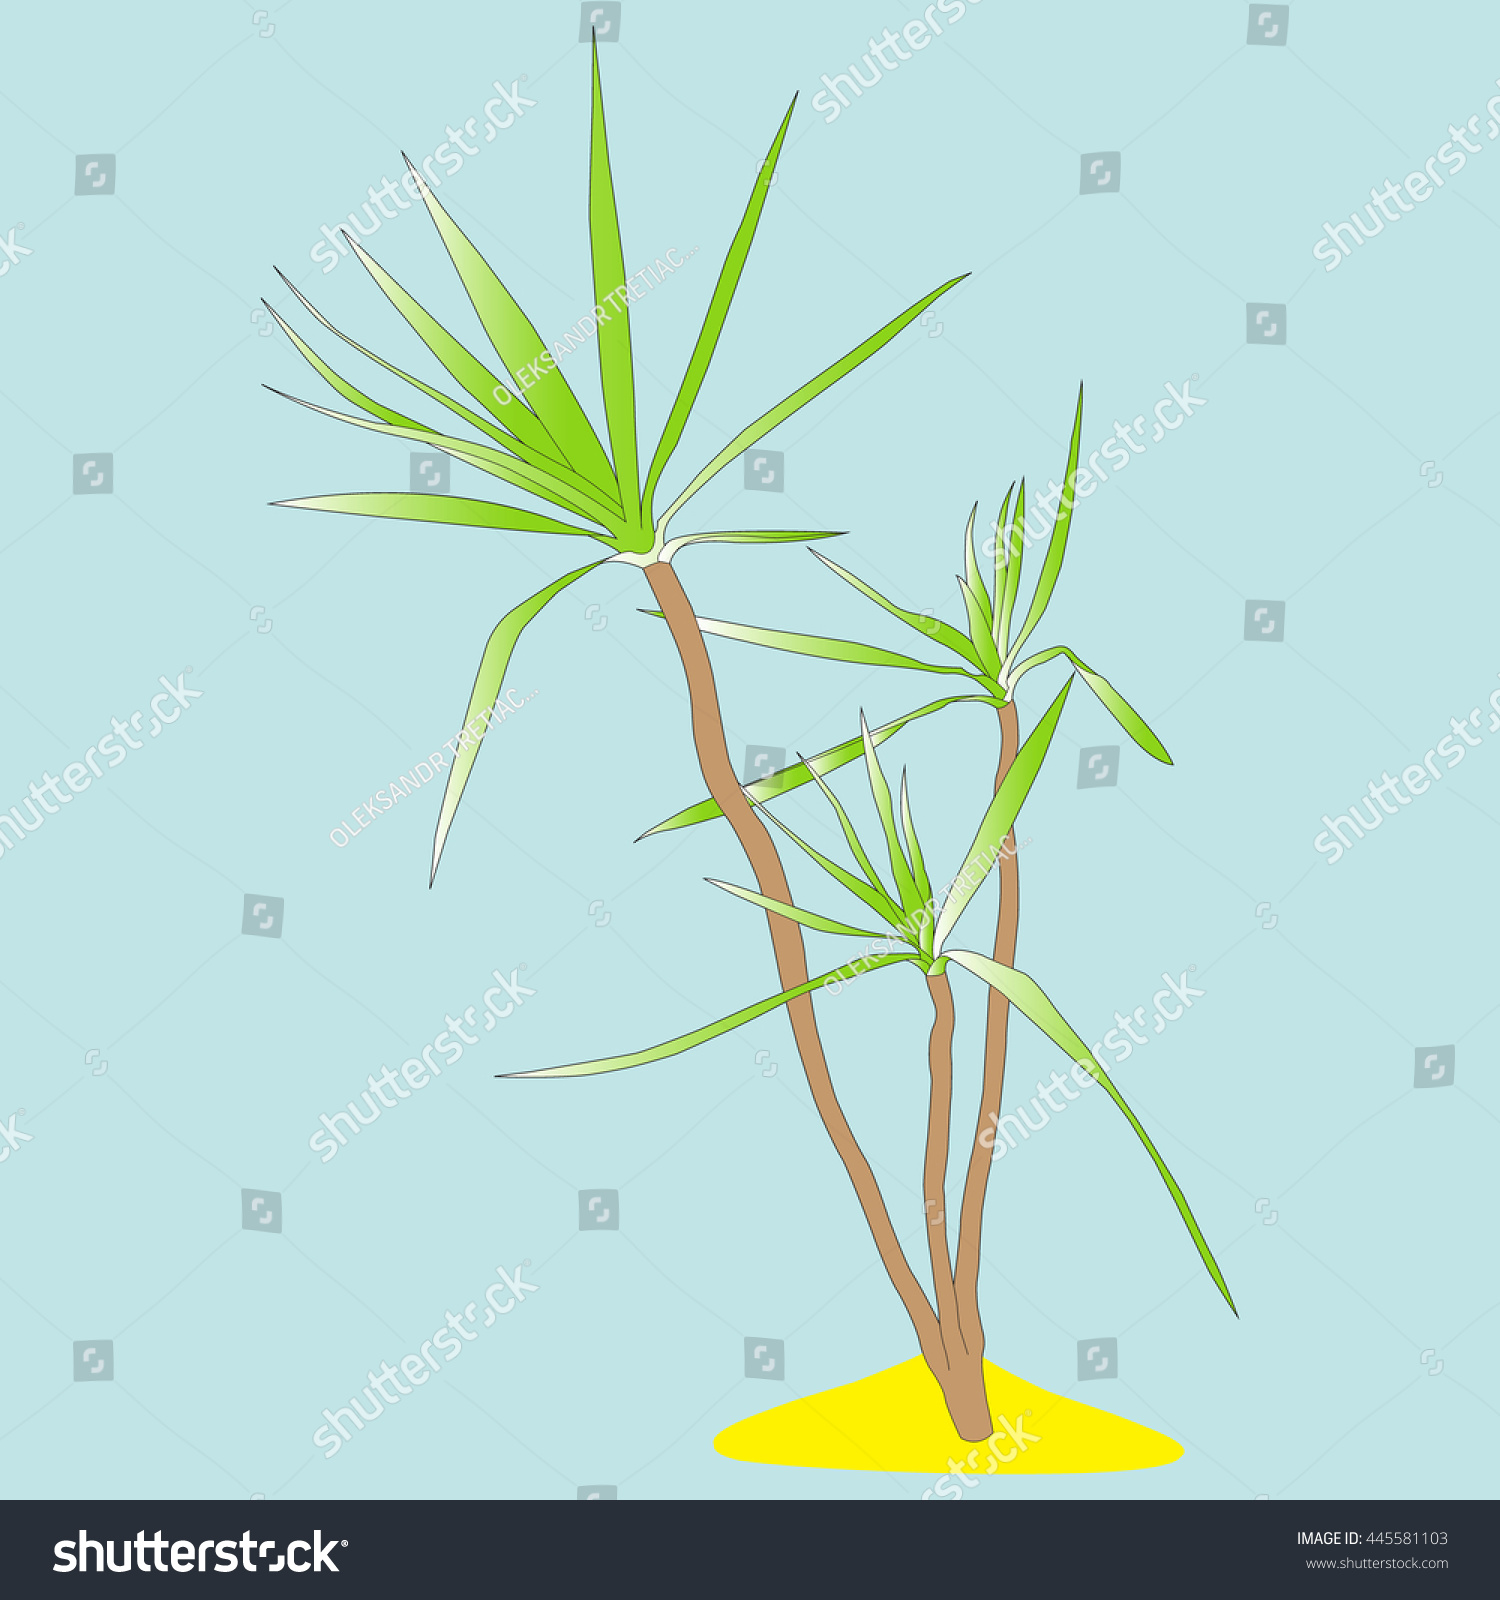 Color Image Palm Trees On Small Stock Vector 445581103 - Shutterstock